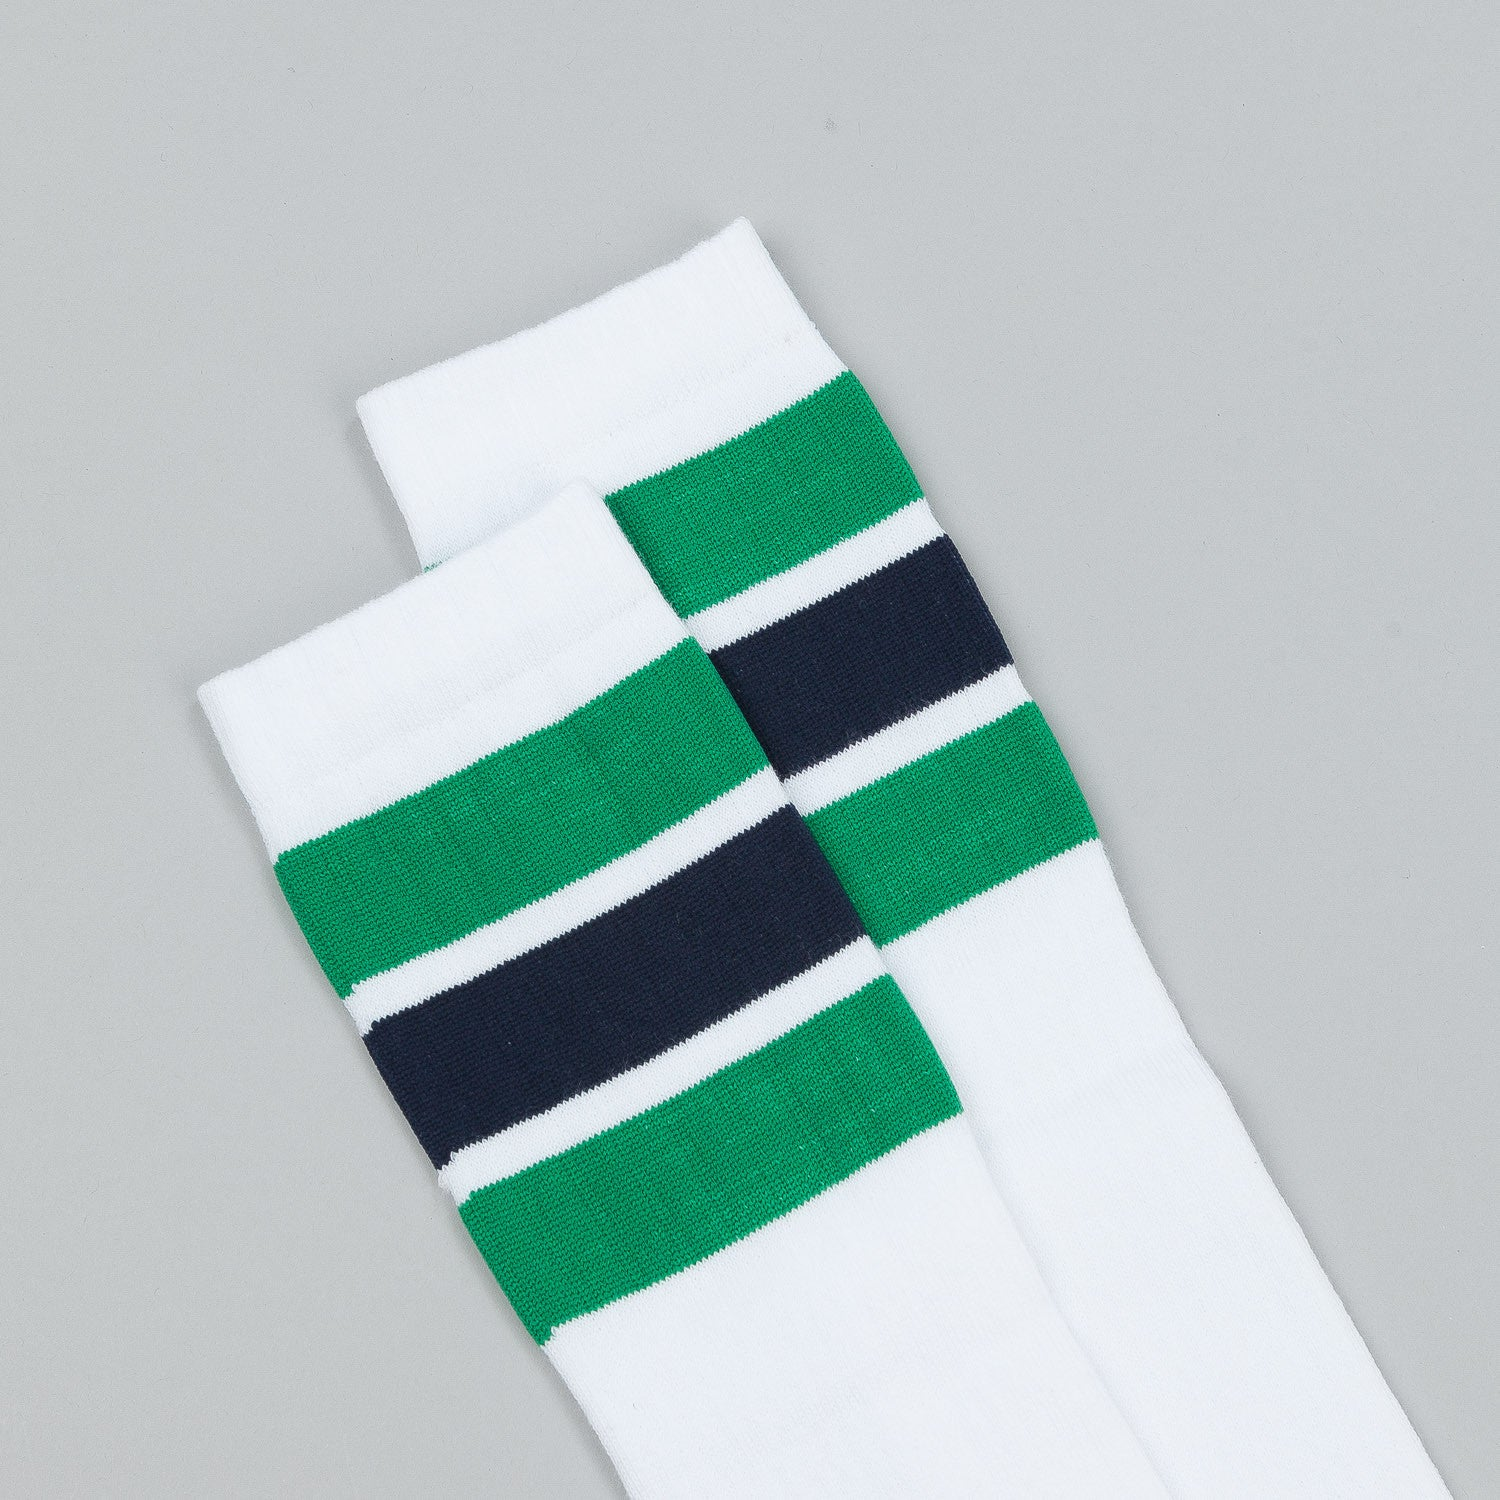 Polar Happy Sad Knee High Socks - White / Green / Navy